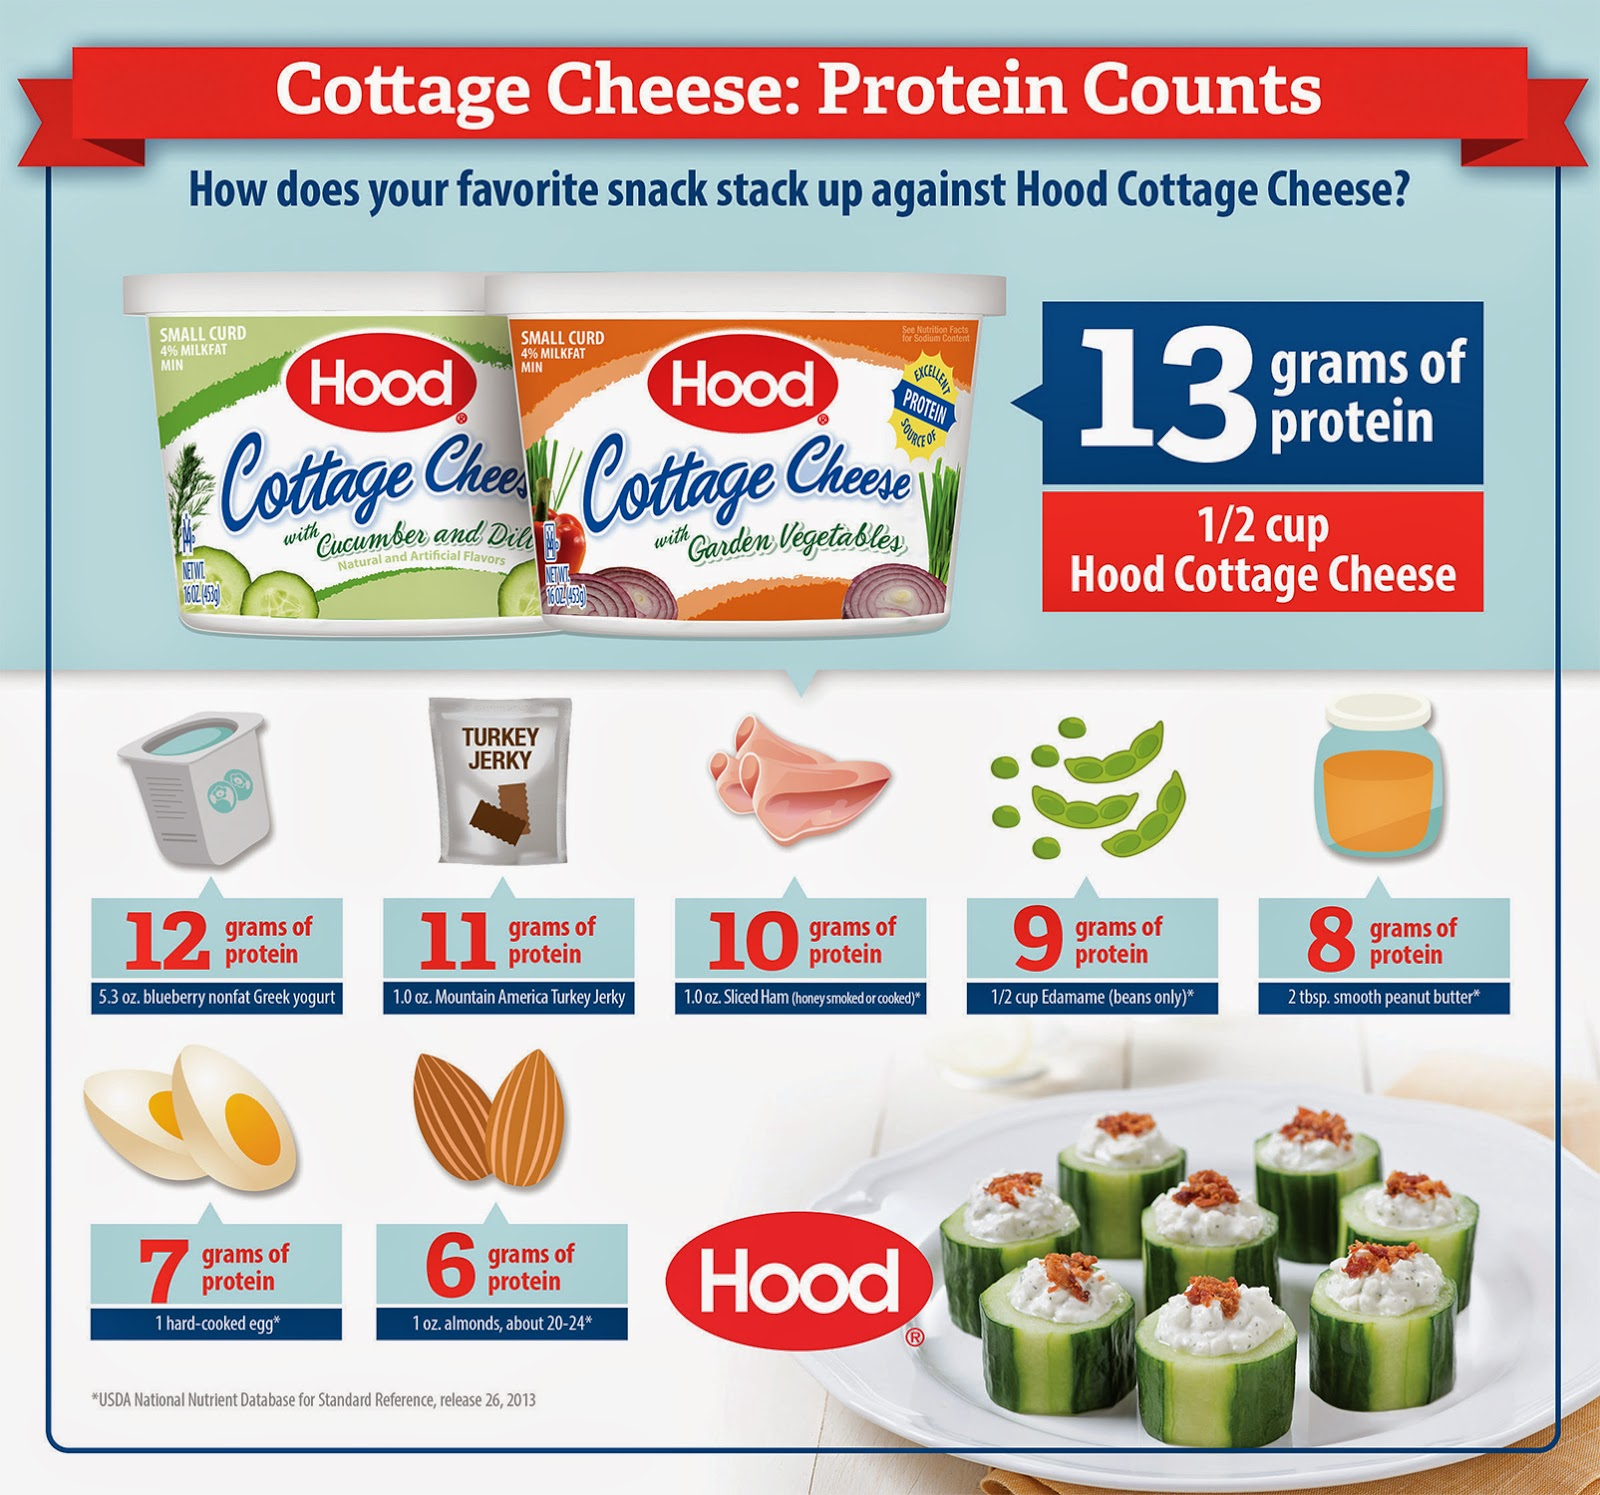 Earlier This Year, Hood Released Their Delicious, Creamy, High Protein And  Nutrient Rich Cottage Cheese In New Flavors Of Garden Veggie And Cucumber  Dill.